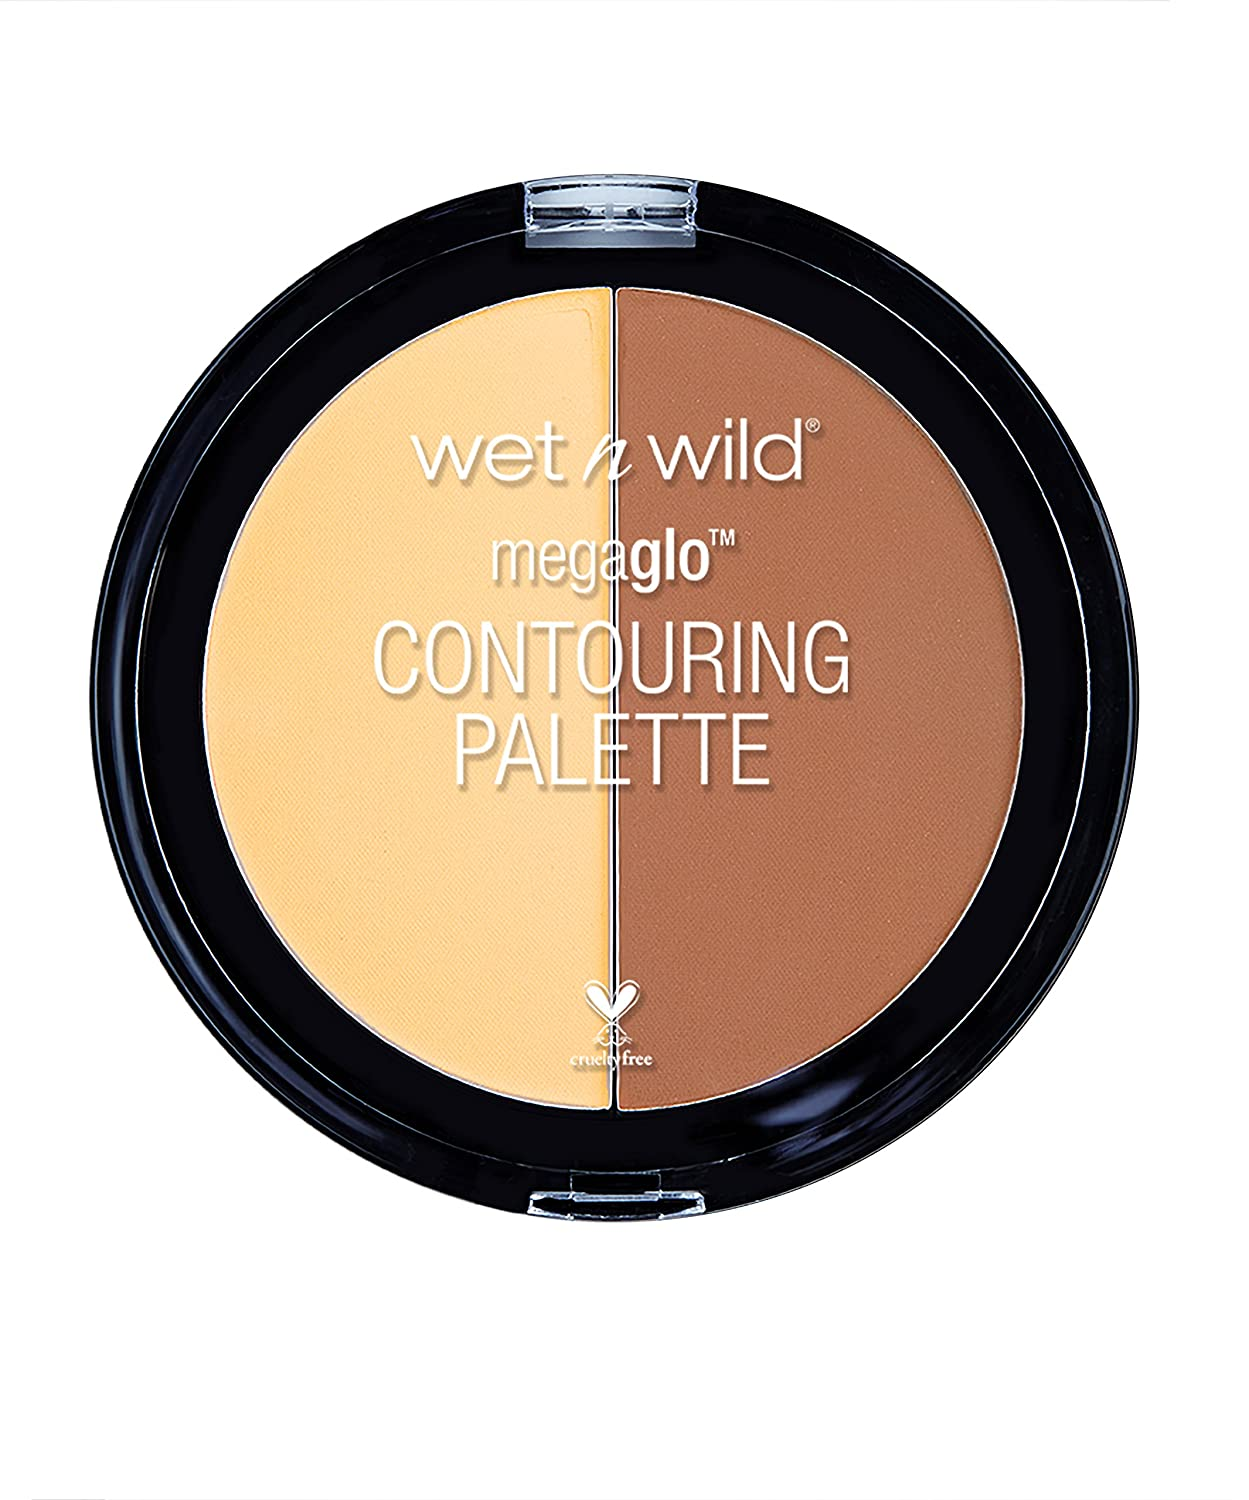 MegaGlo Contouring Palette, Caramel Toffee Markwins Beauty Products E7501